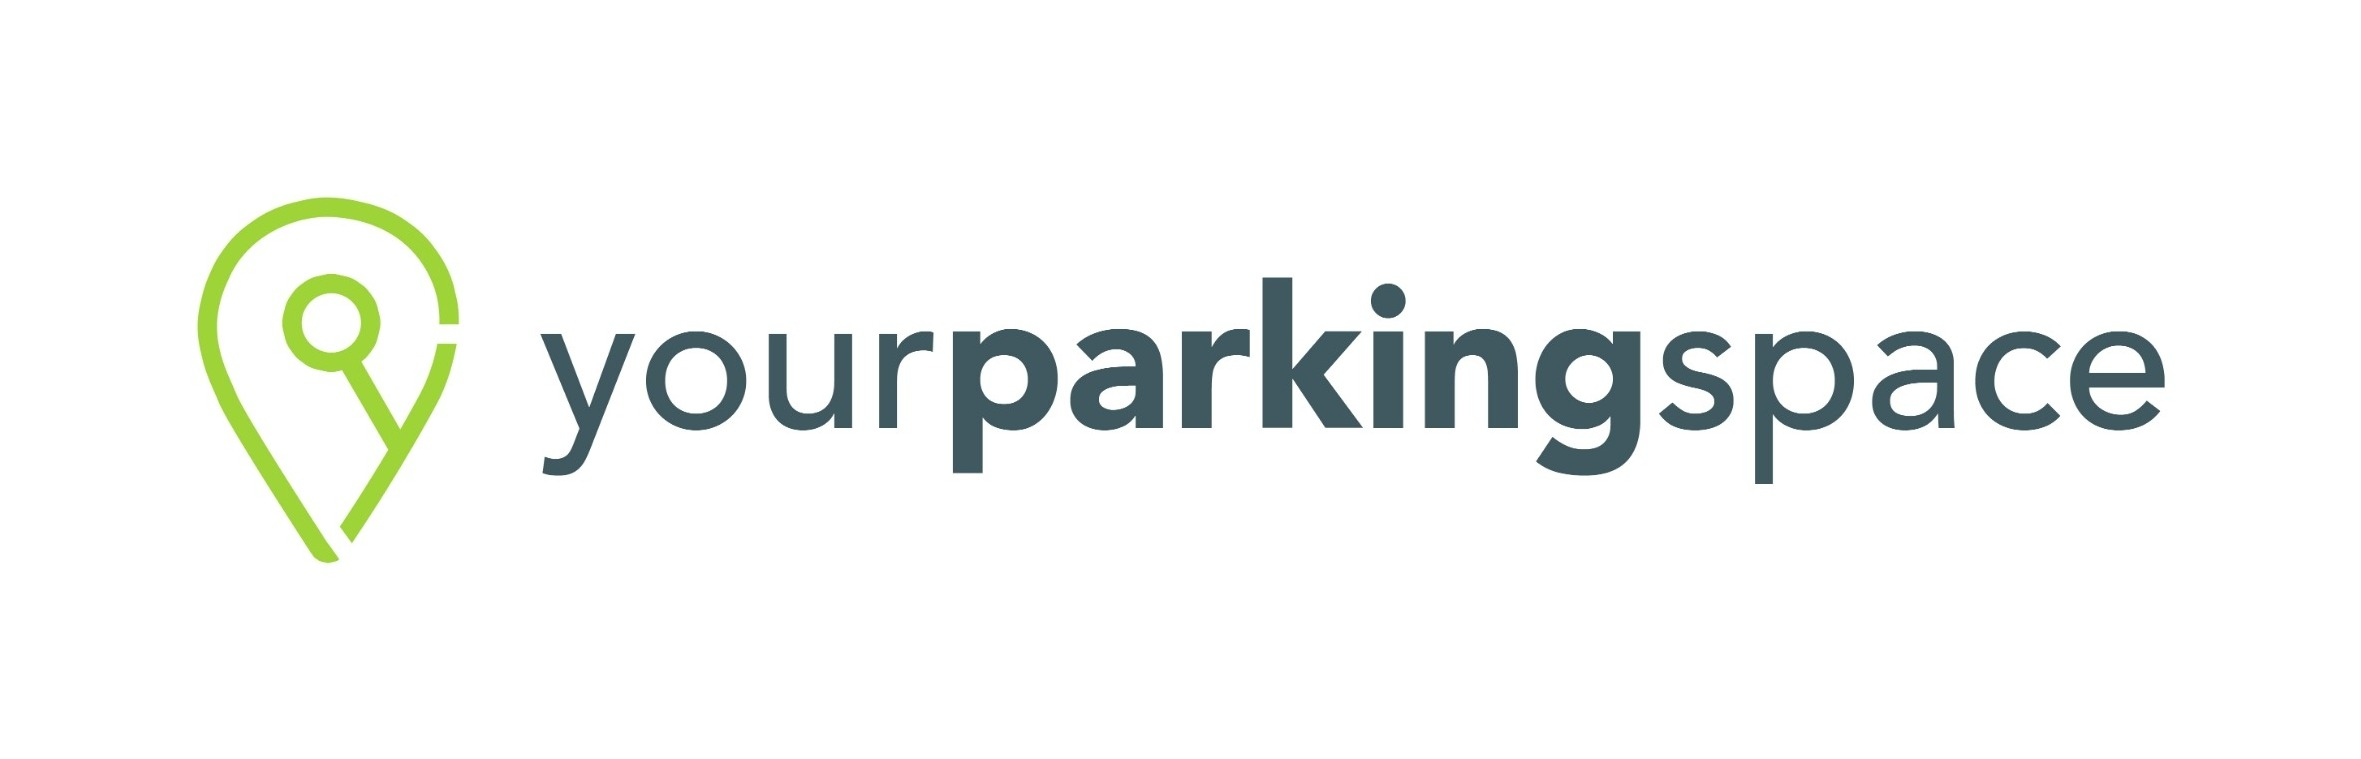 Your Parking Space coupon code